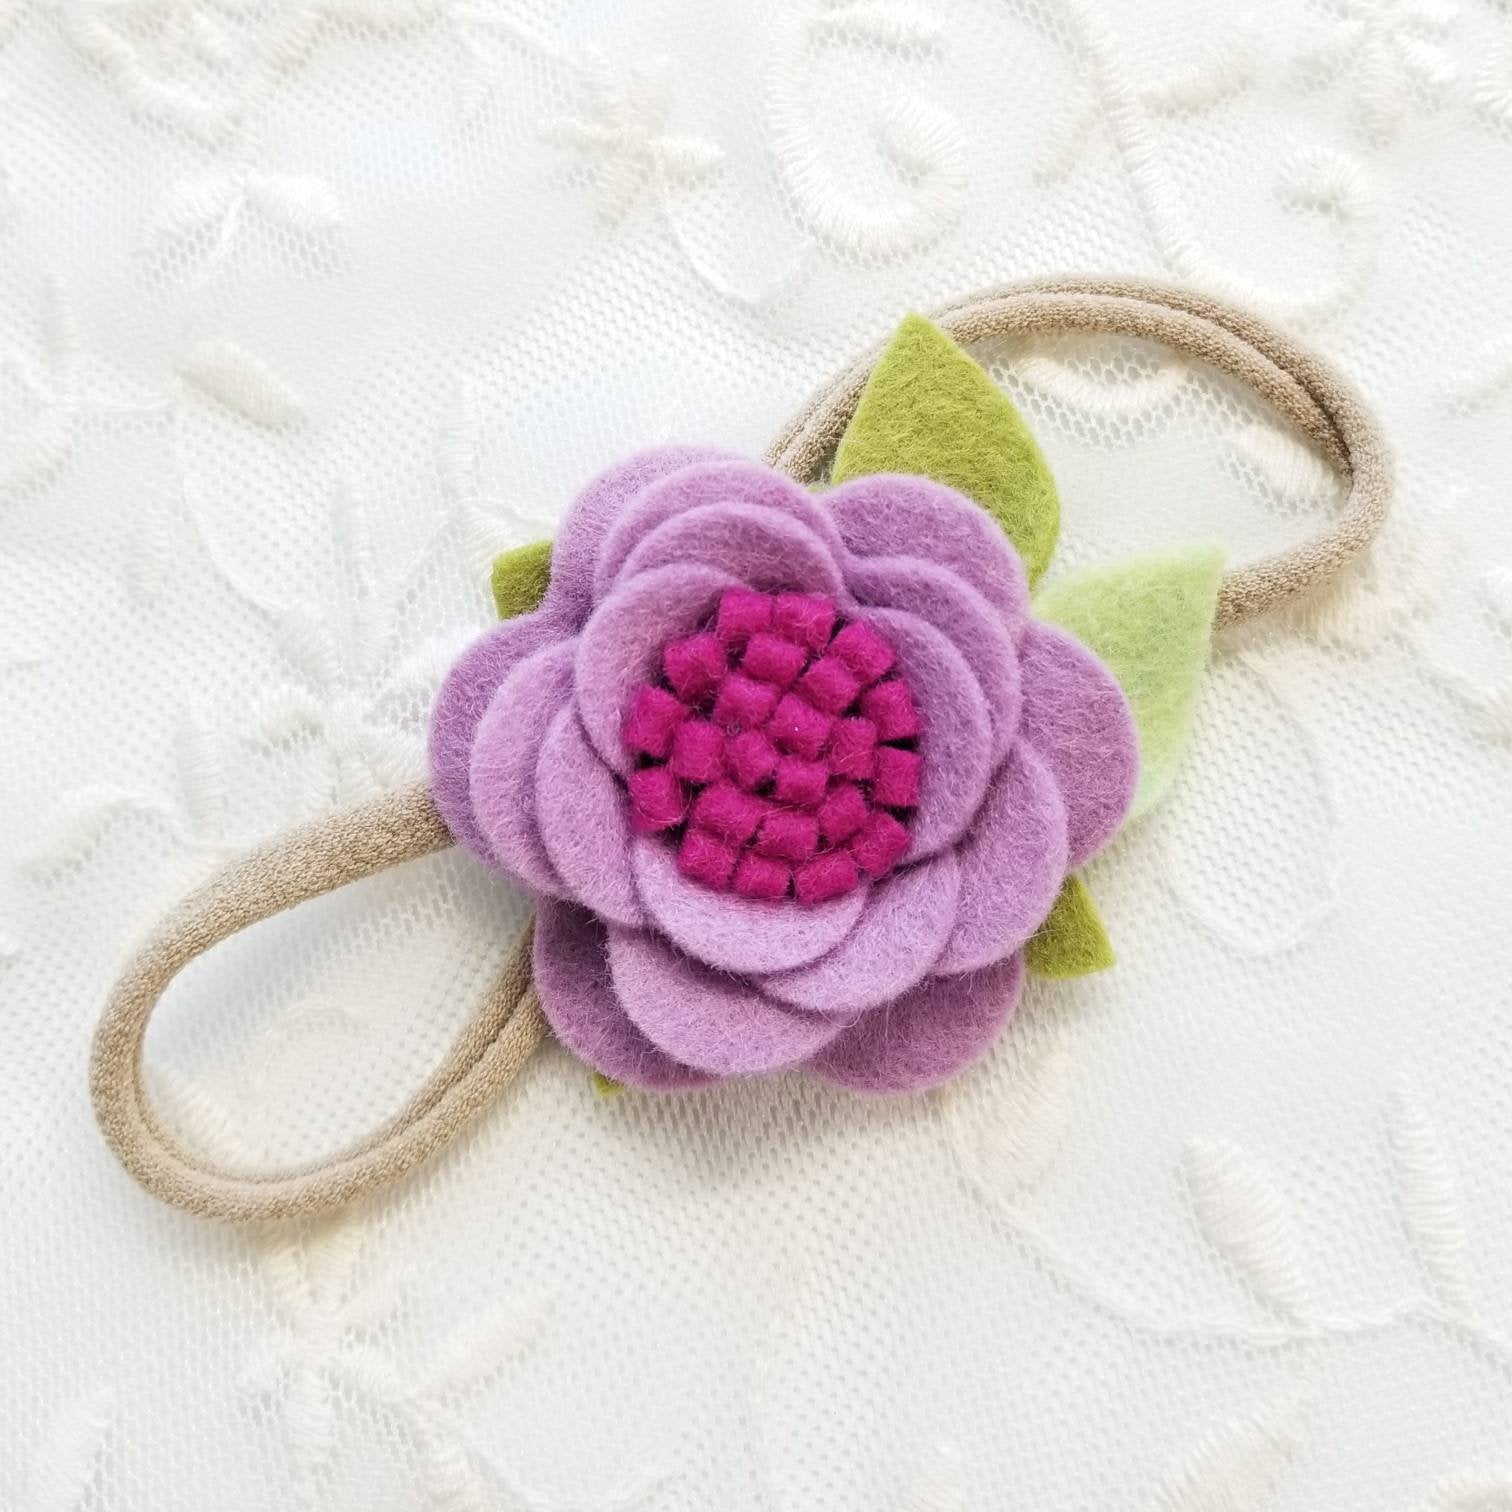 Mulberry, Mini Flower, baby Bows, Floral Baby Headband, vanaguelite, hair accessories, rosettes, flower crown.